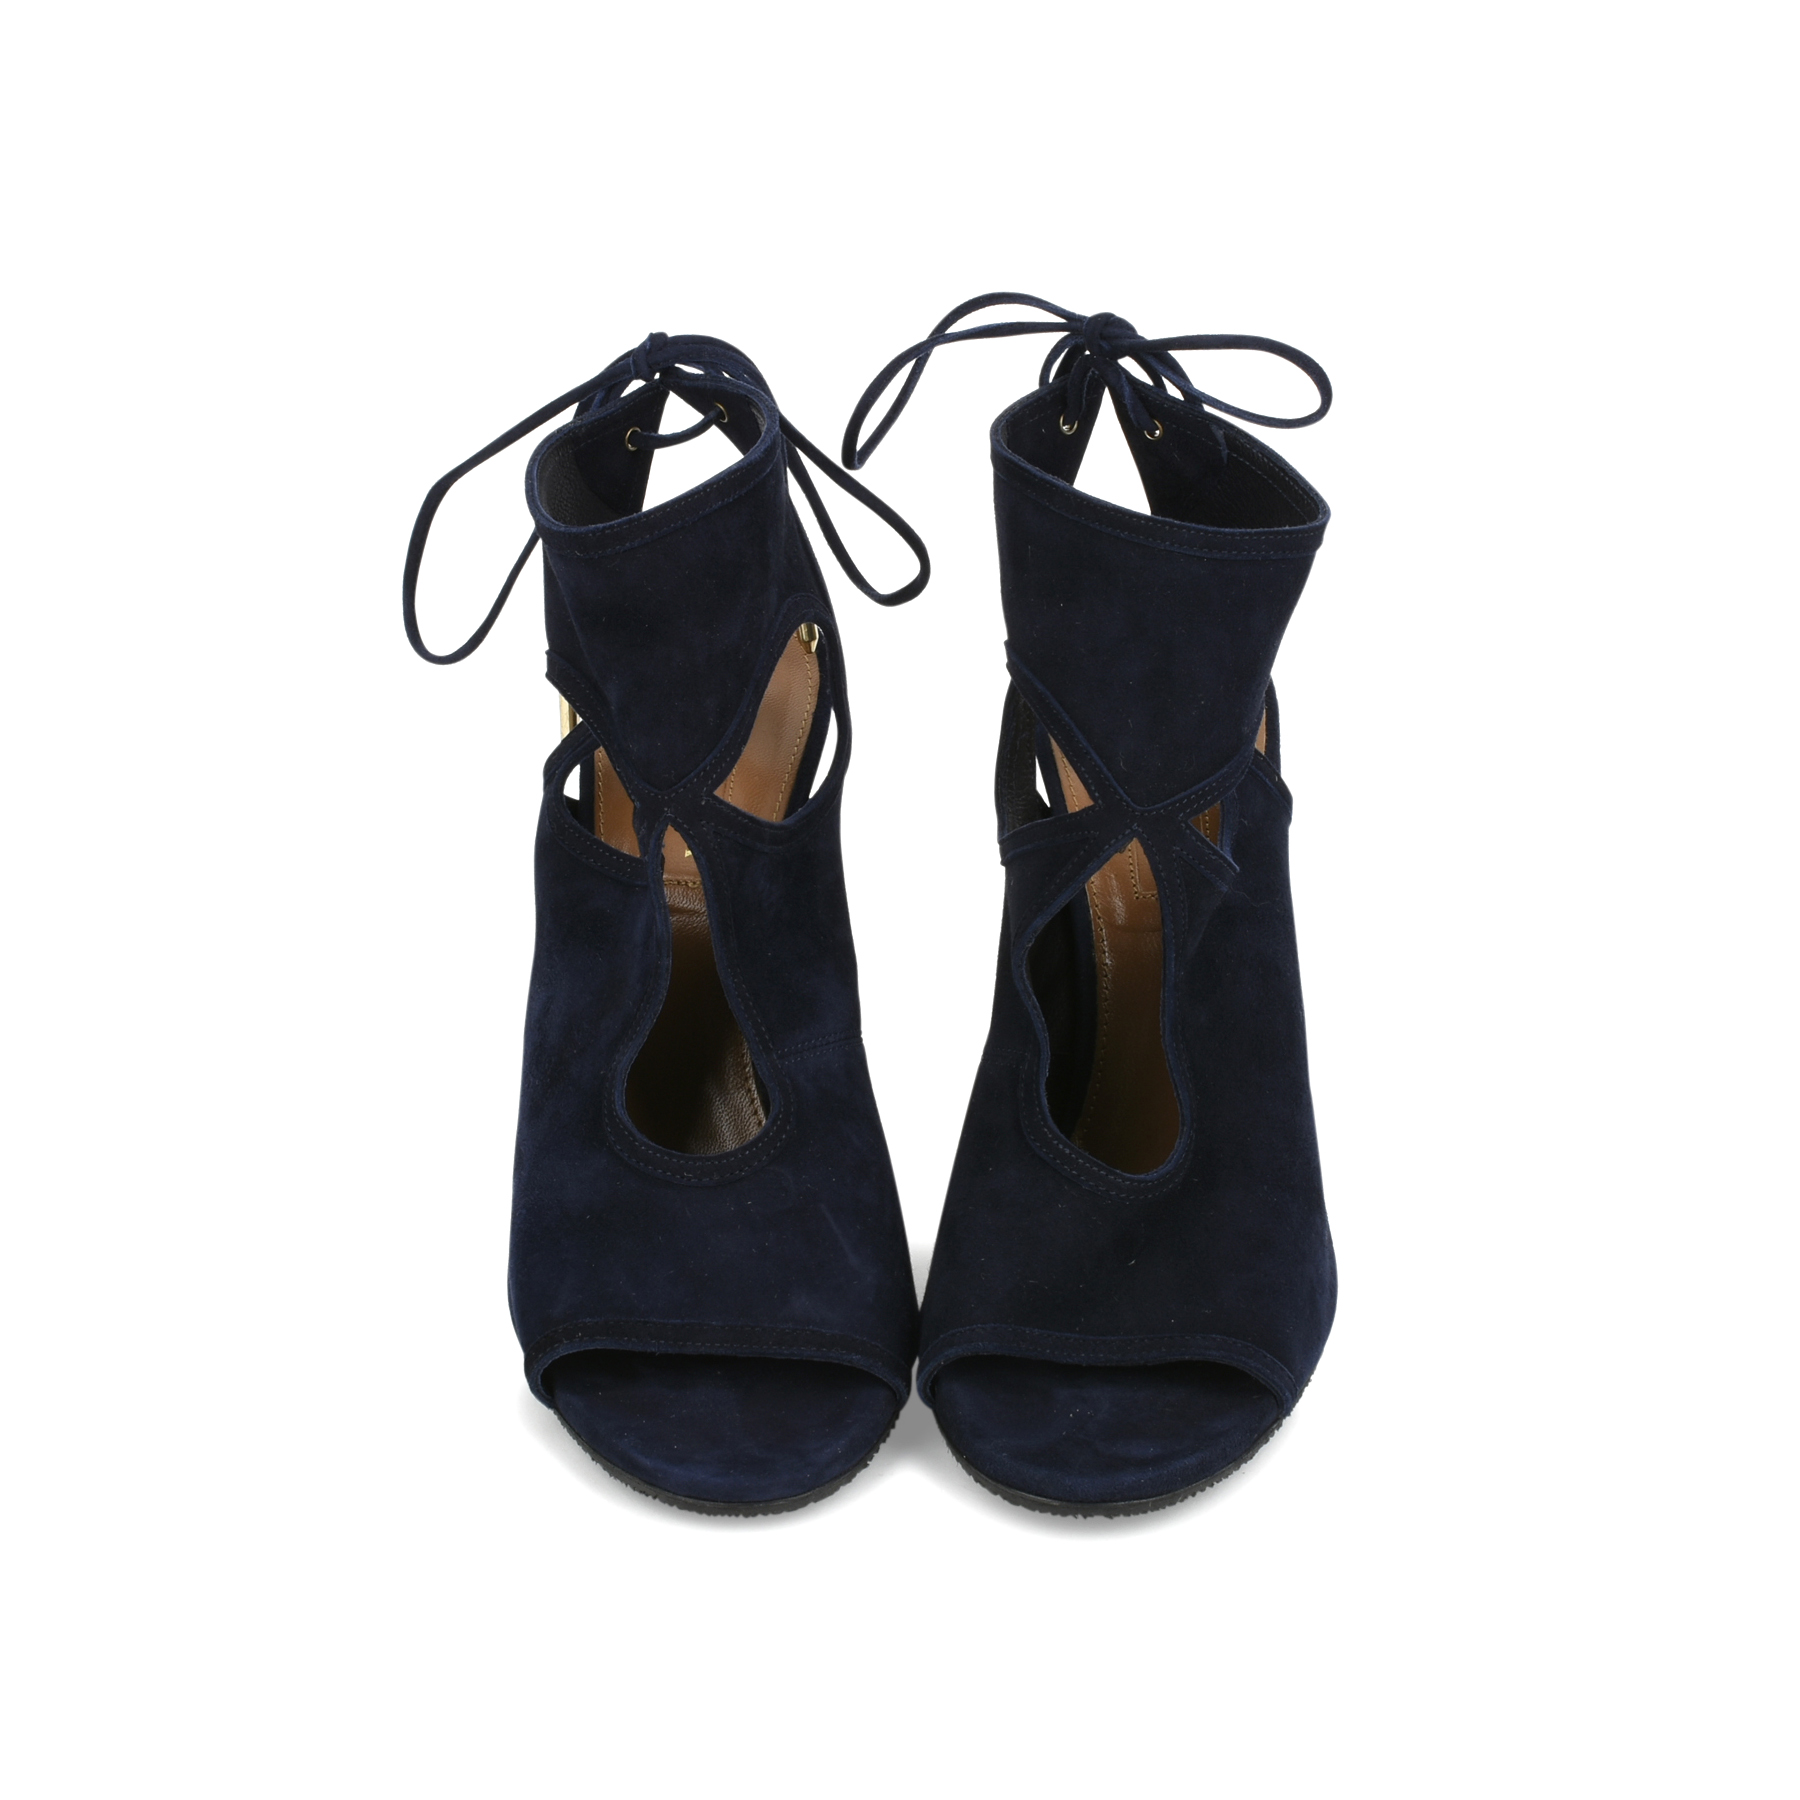 203c729eb35a Authentic Second Hand Aquazzura Sexy Thing Suede Sandals (PSS-444-00006)